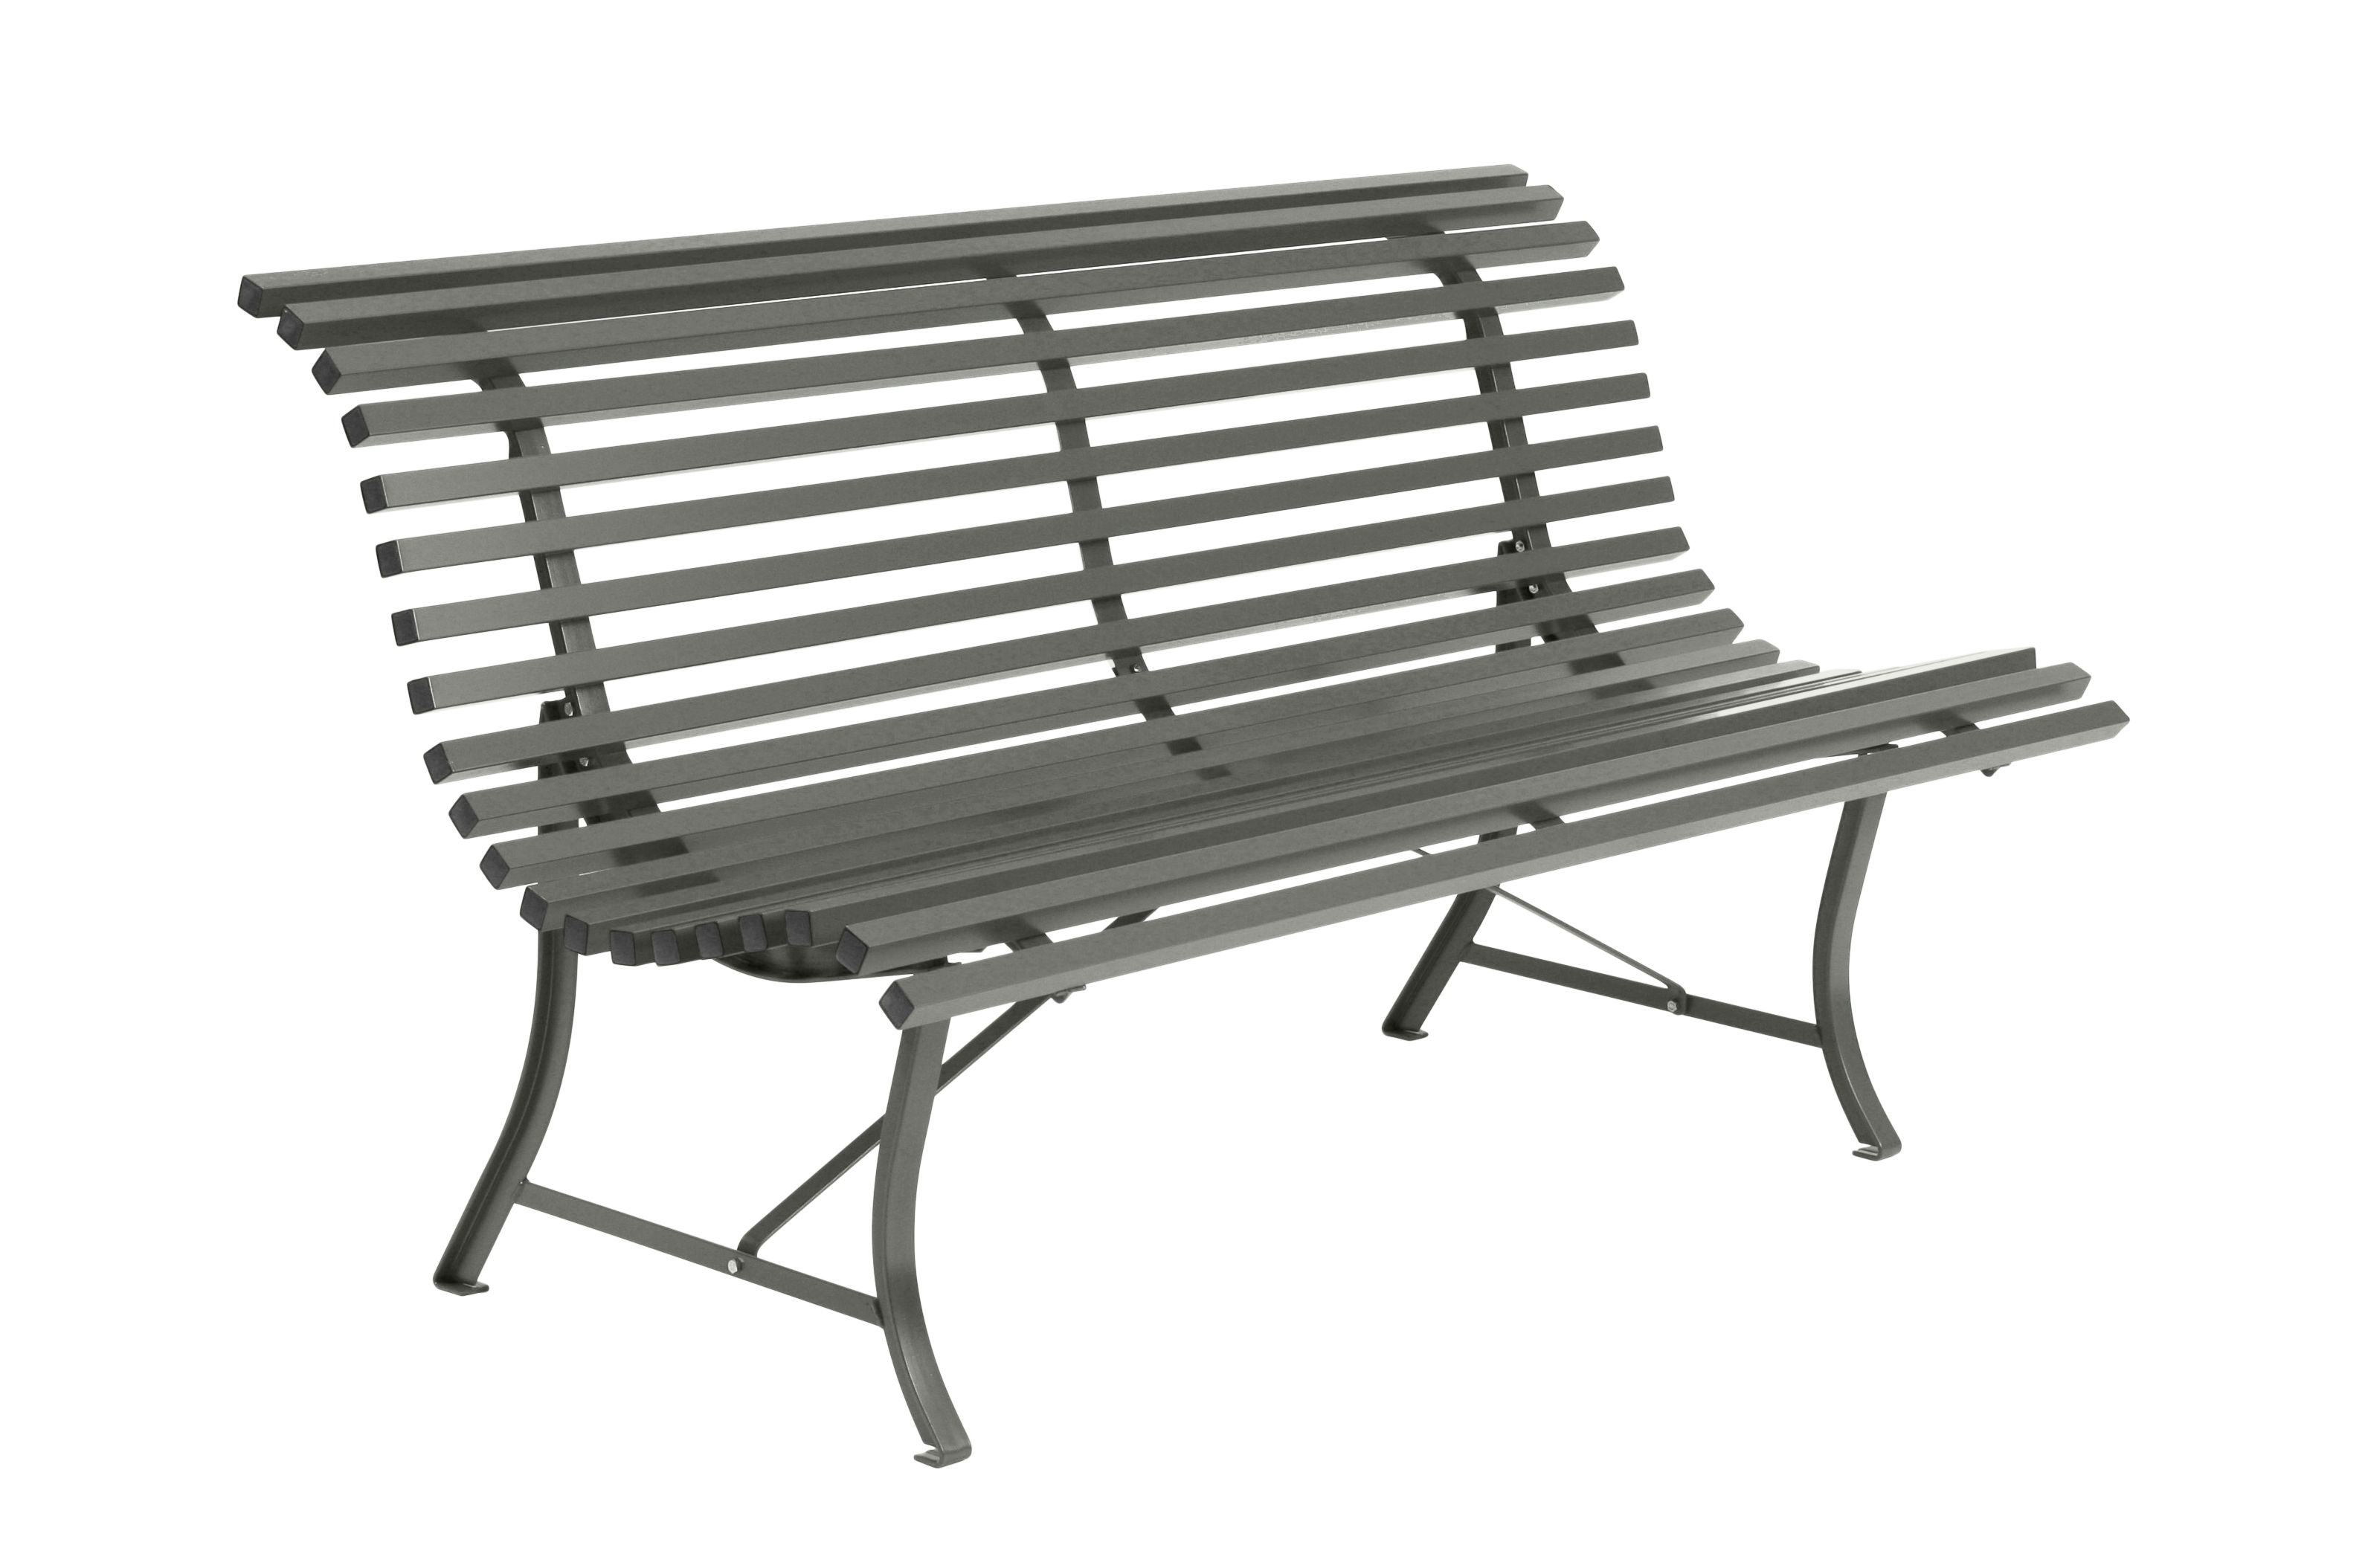 Outdoor - Benches - Louisiane Bench with backrest - / L 150 cm - Metal by Fermob - Rosemary - Electro-galvanized steel